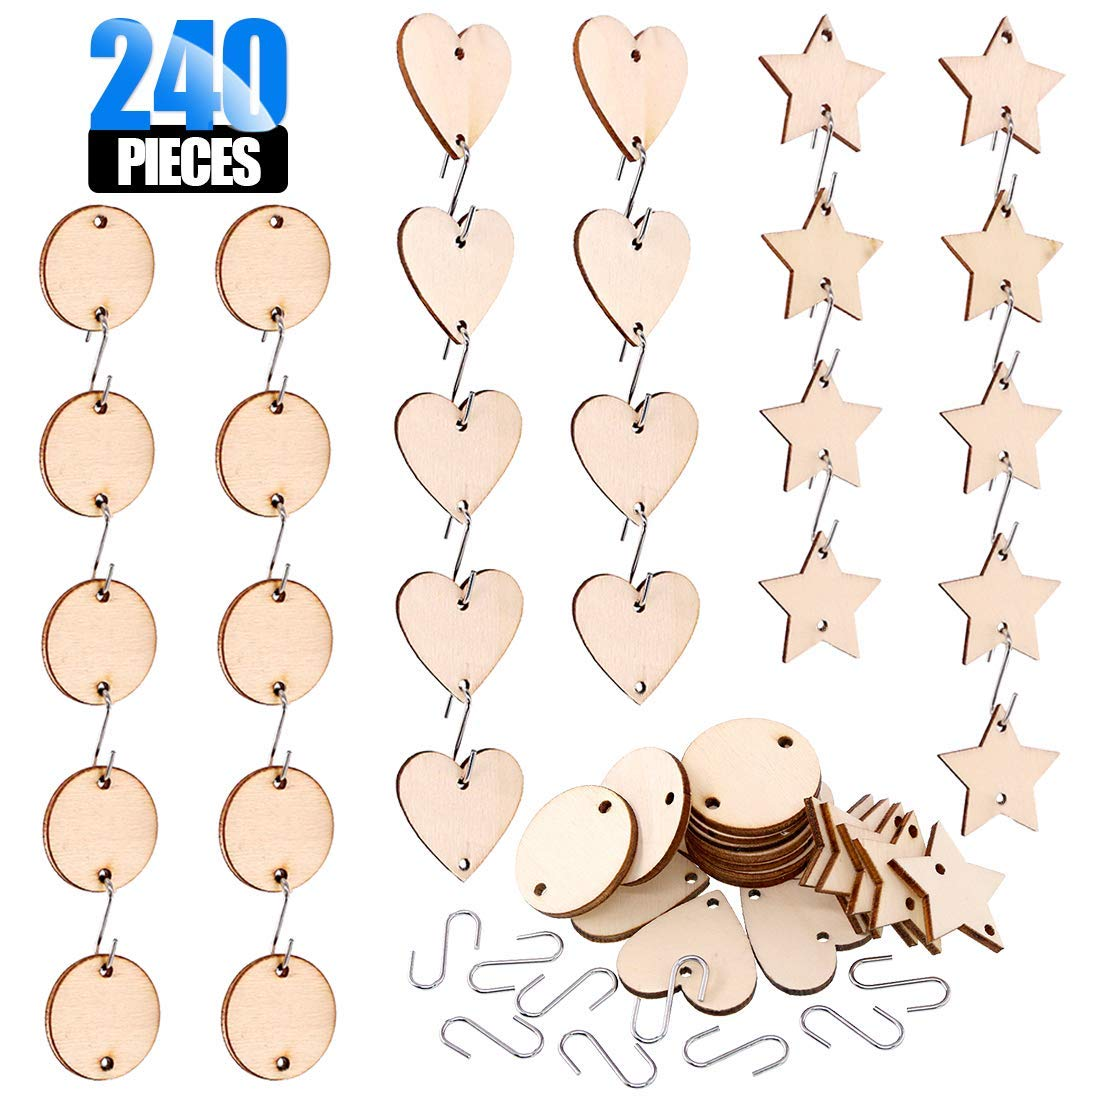 Glarka 240-Pieces 1.2 inch Wooden Star/Circles / Heart Tags with Holes and Stainless Steel S Shaped Hook Connectors for Birthday Boards, Valentine, Decorations and DIY Crafts